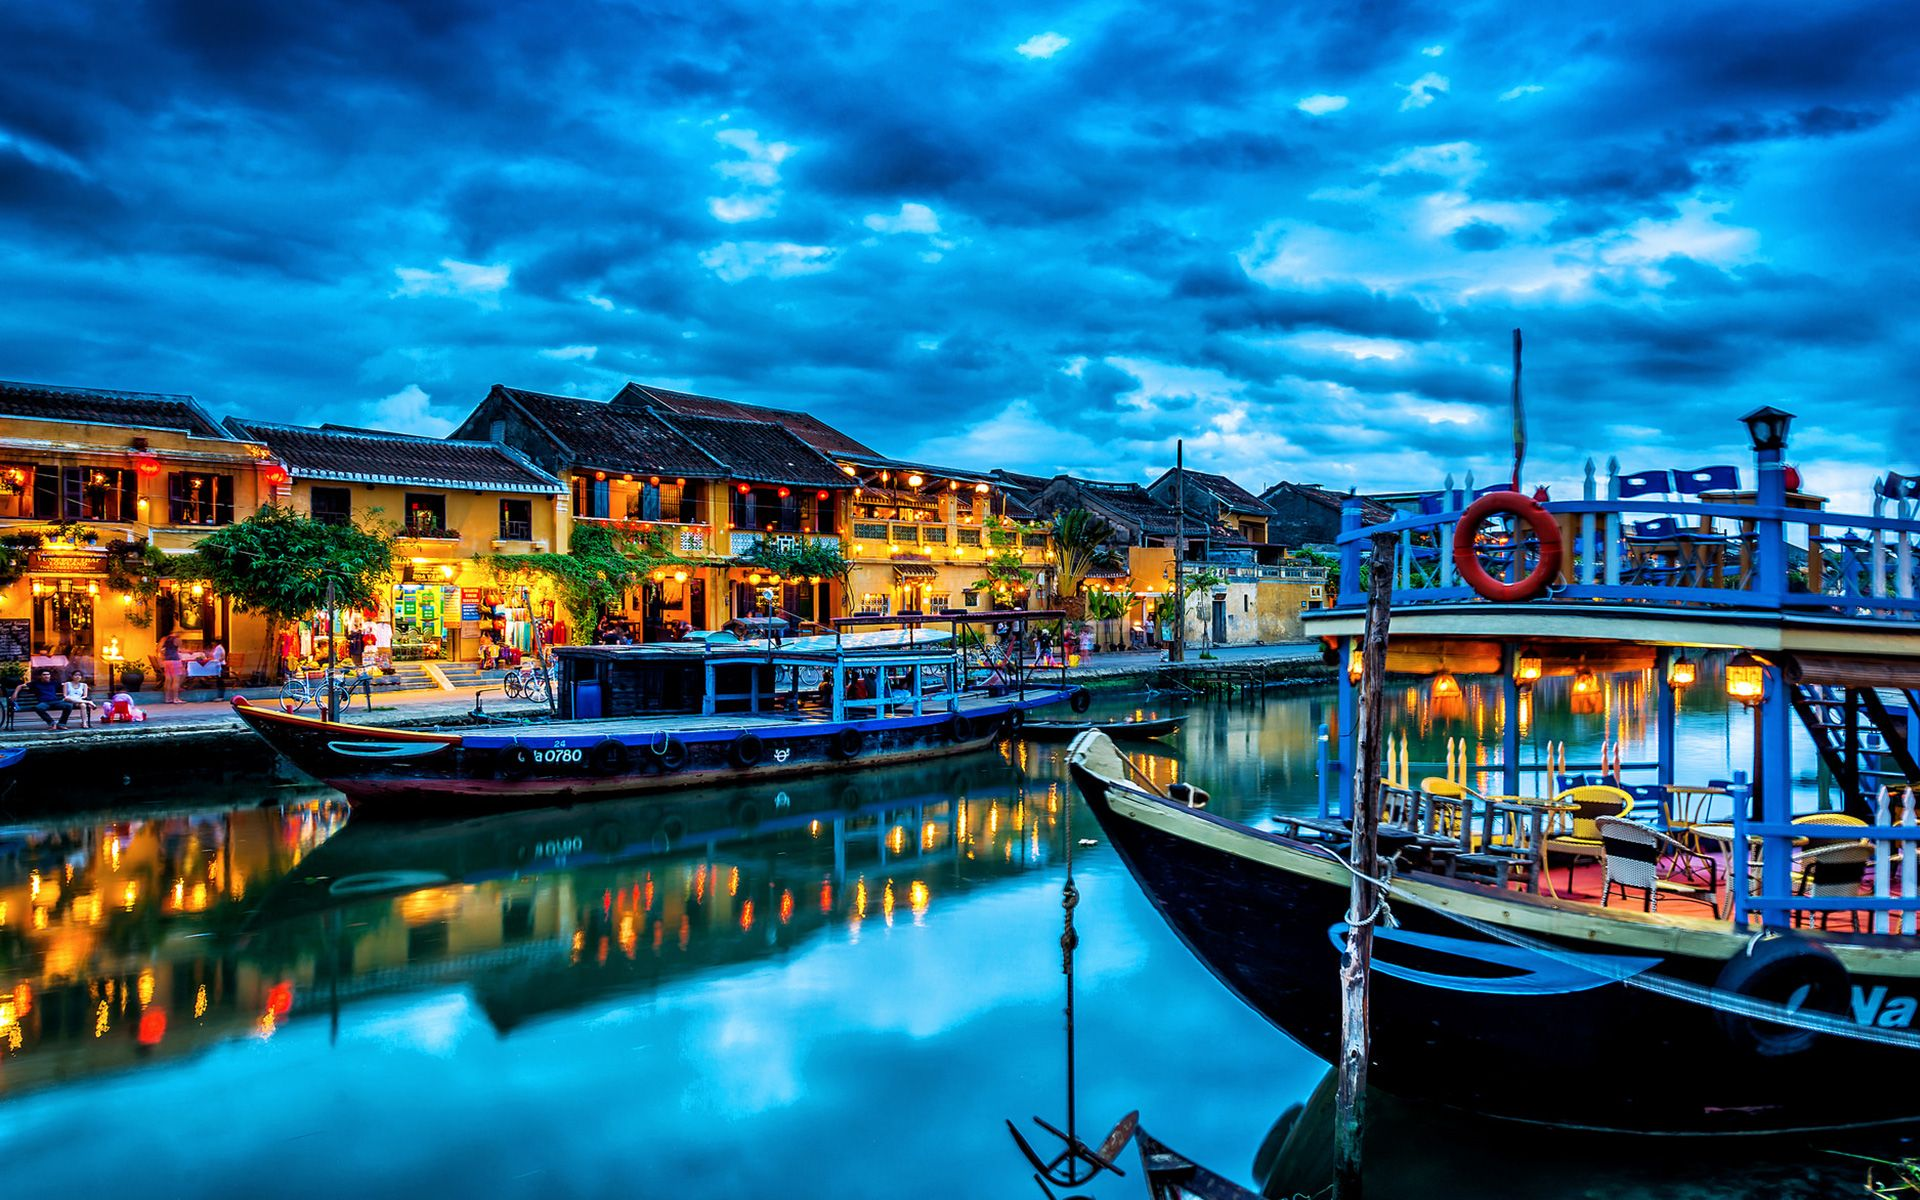 Hoi An Ancient Town - UNESCO World Heritage Centre ...